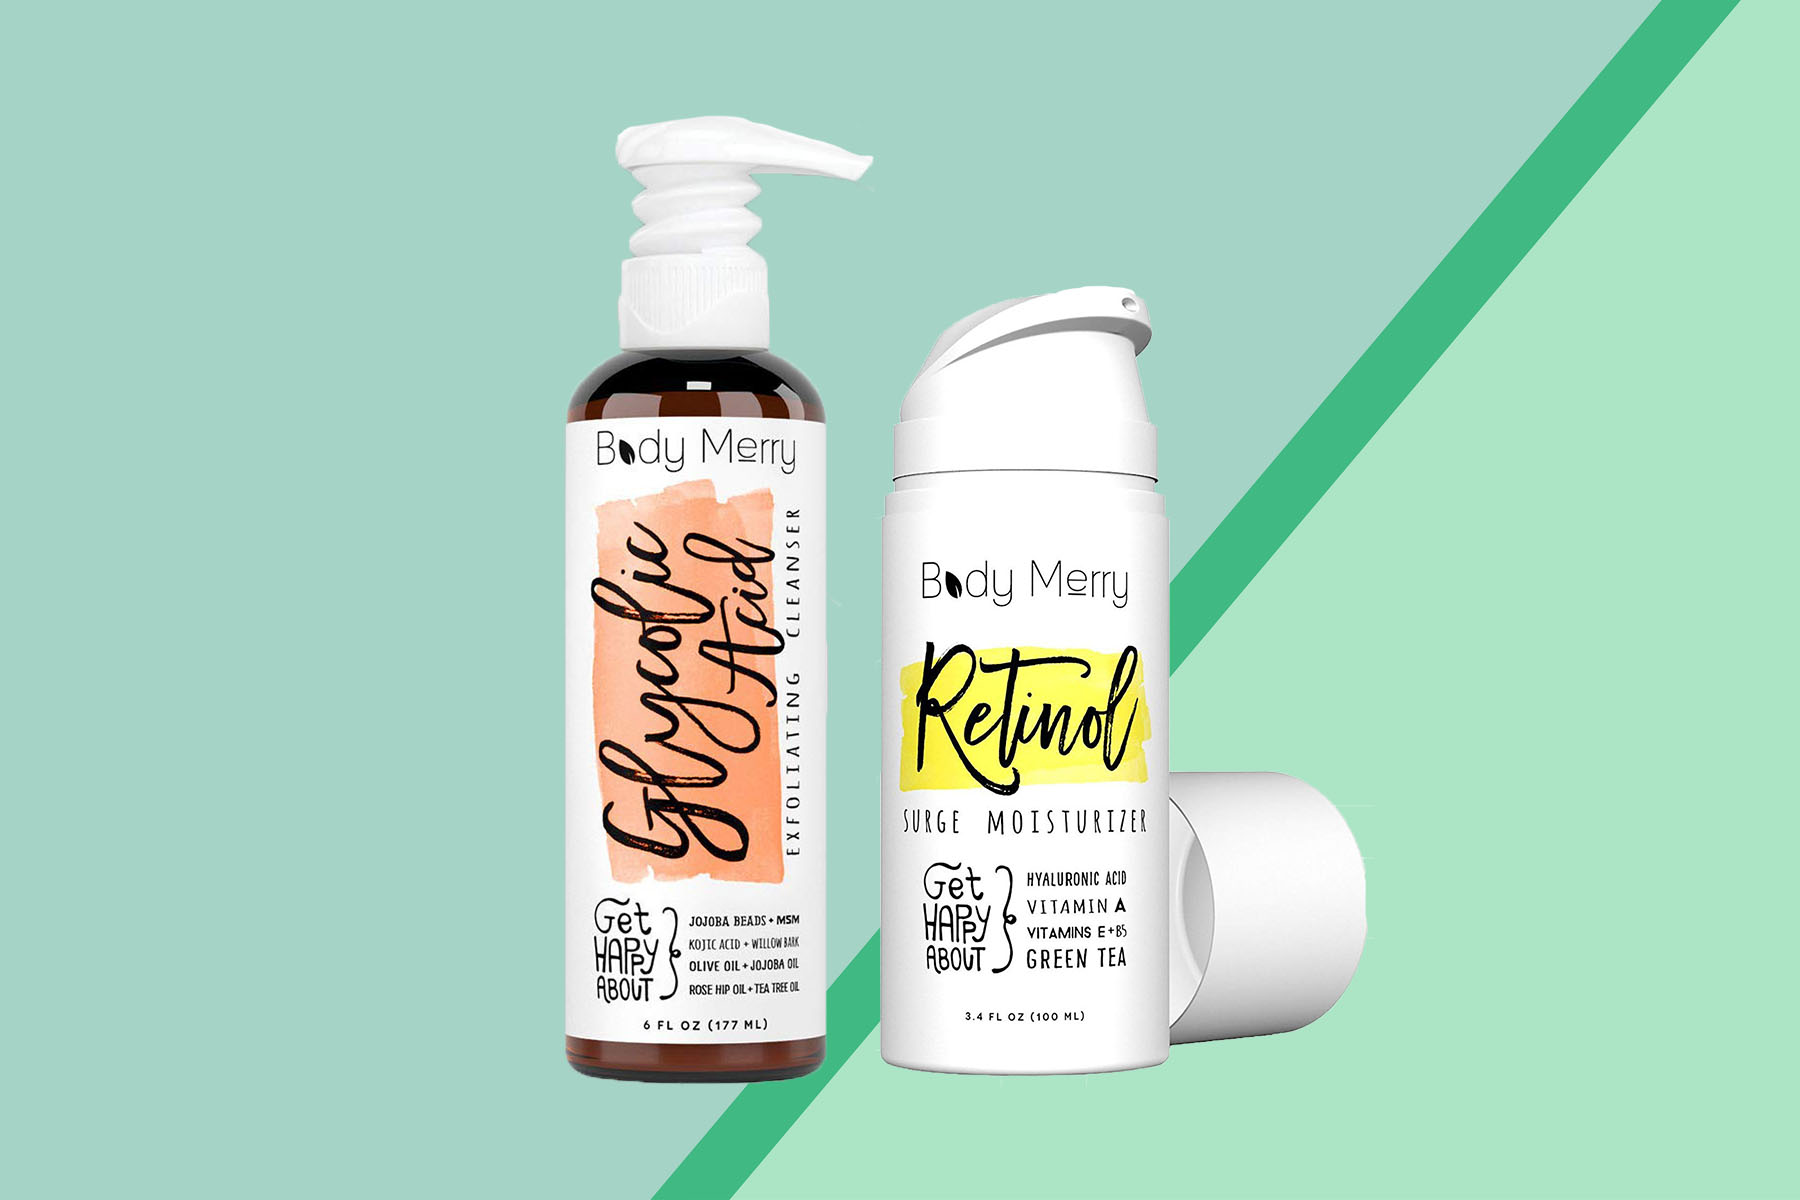 This Anti-Aging Skincare Line Has More Than 12,000 Positive Reviews